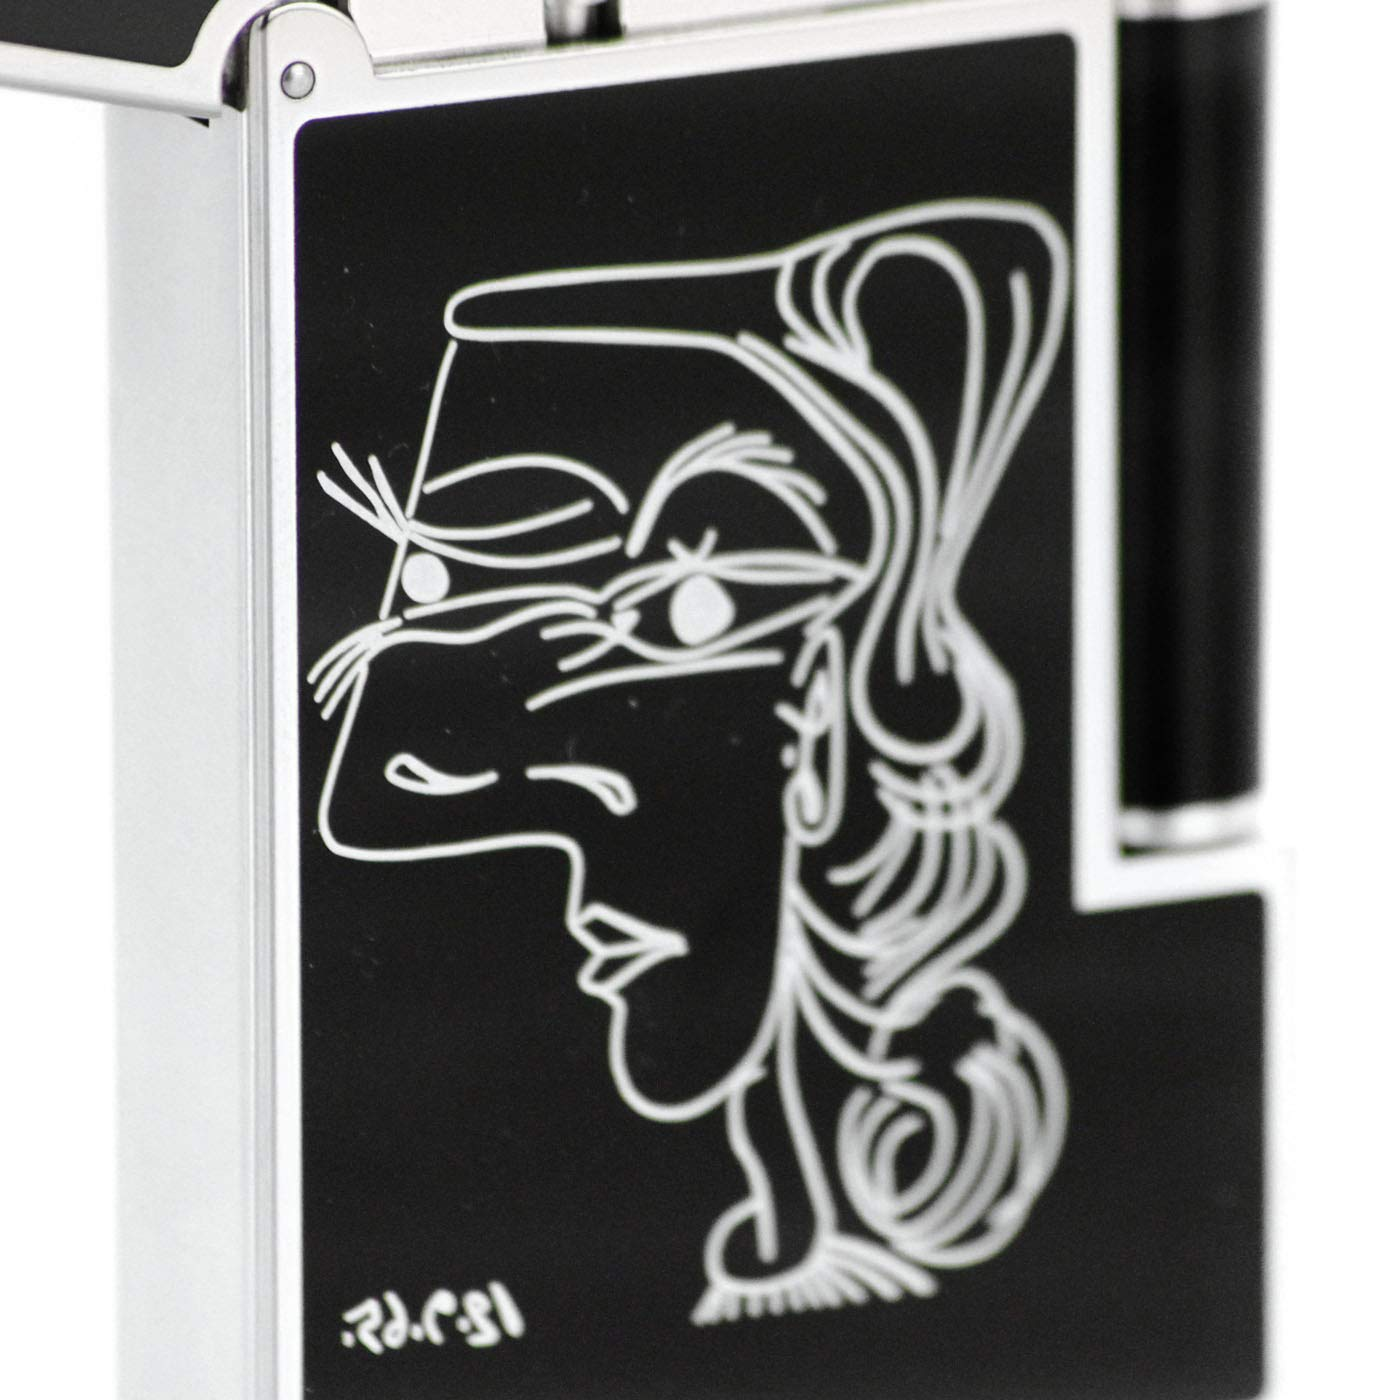 S.T. Dupont Ligne 2 Limited Edition Picasso 2018 Lighter 16105 by S.T. Dupont (Image #5)